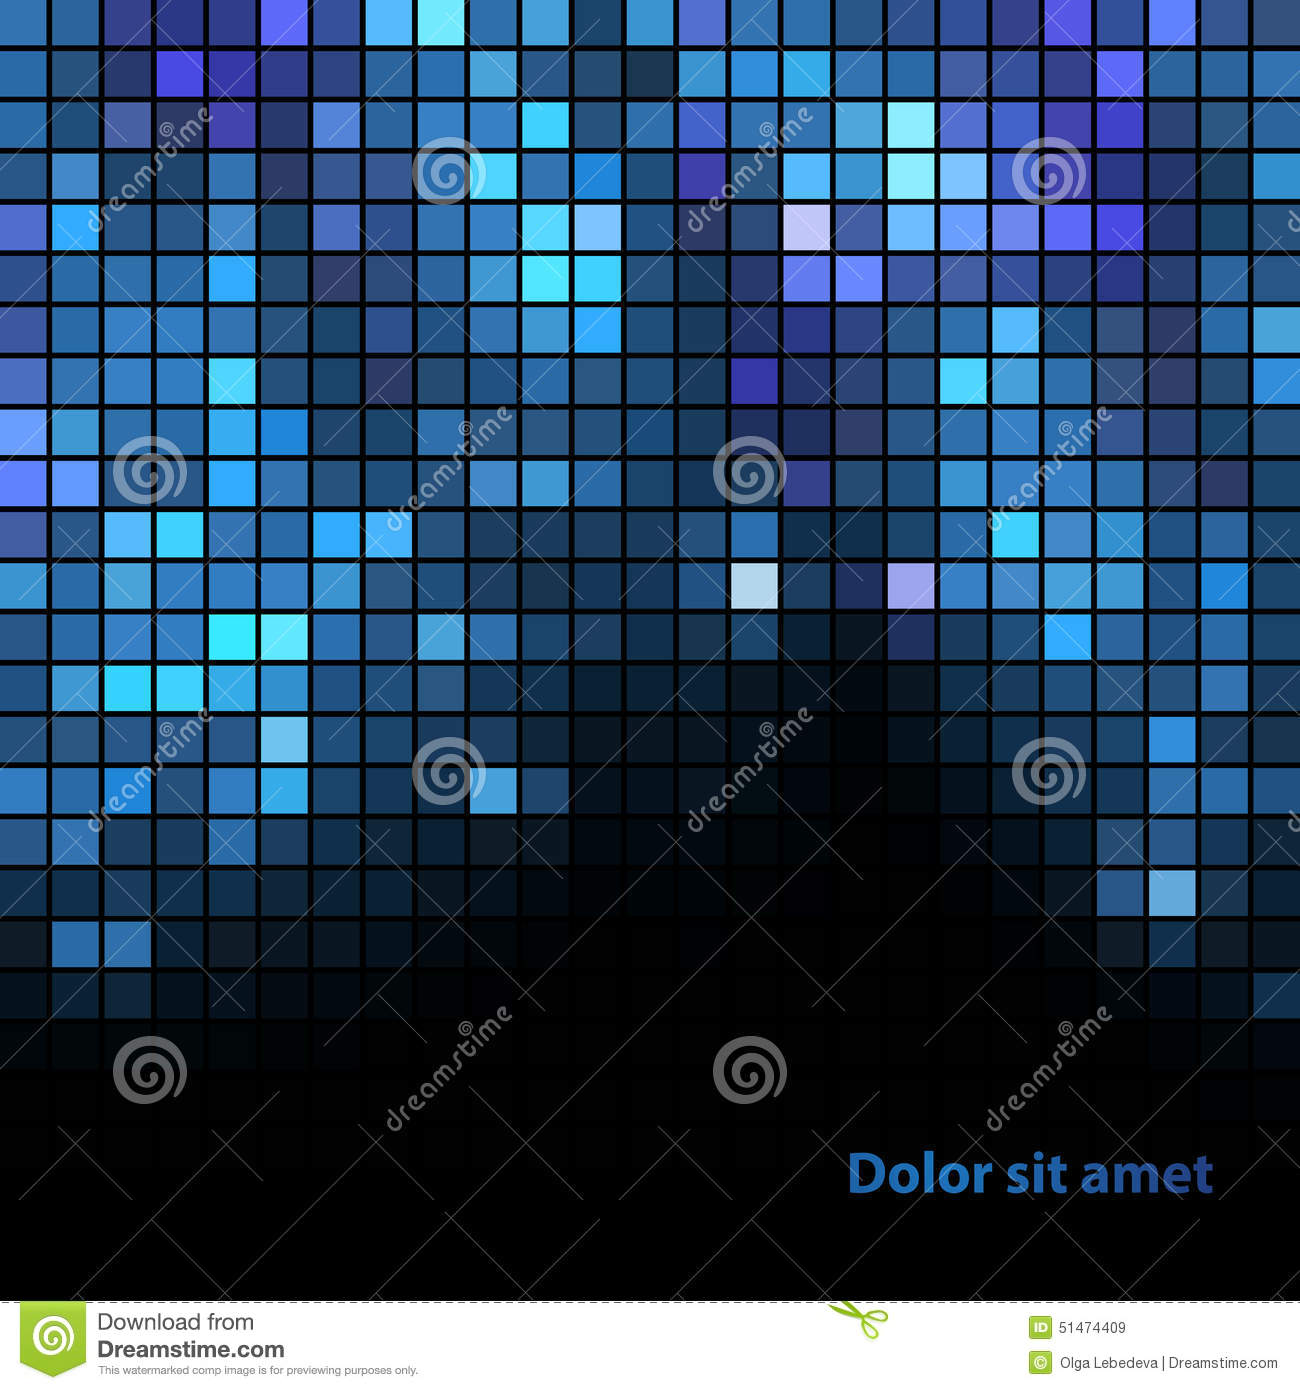 Shiny background with sequins stock vector illustration of shiny background with sequins template for your design can be used for business cards presentations banners colourmoves